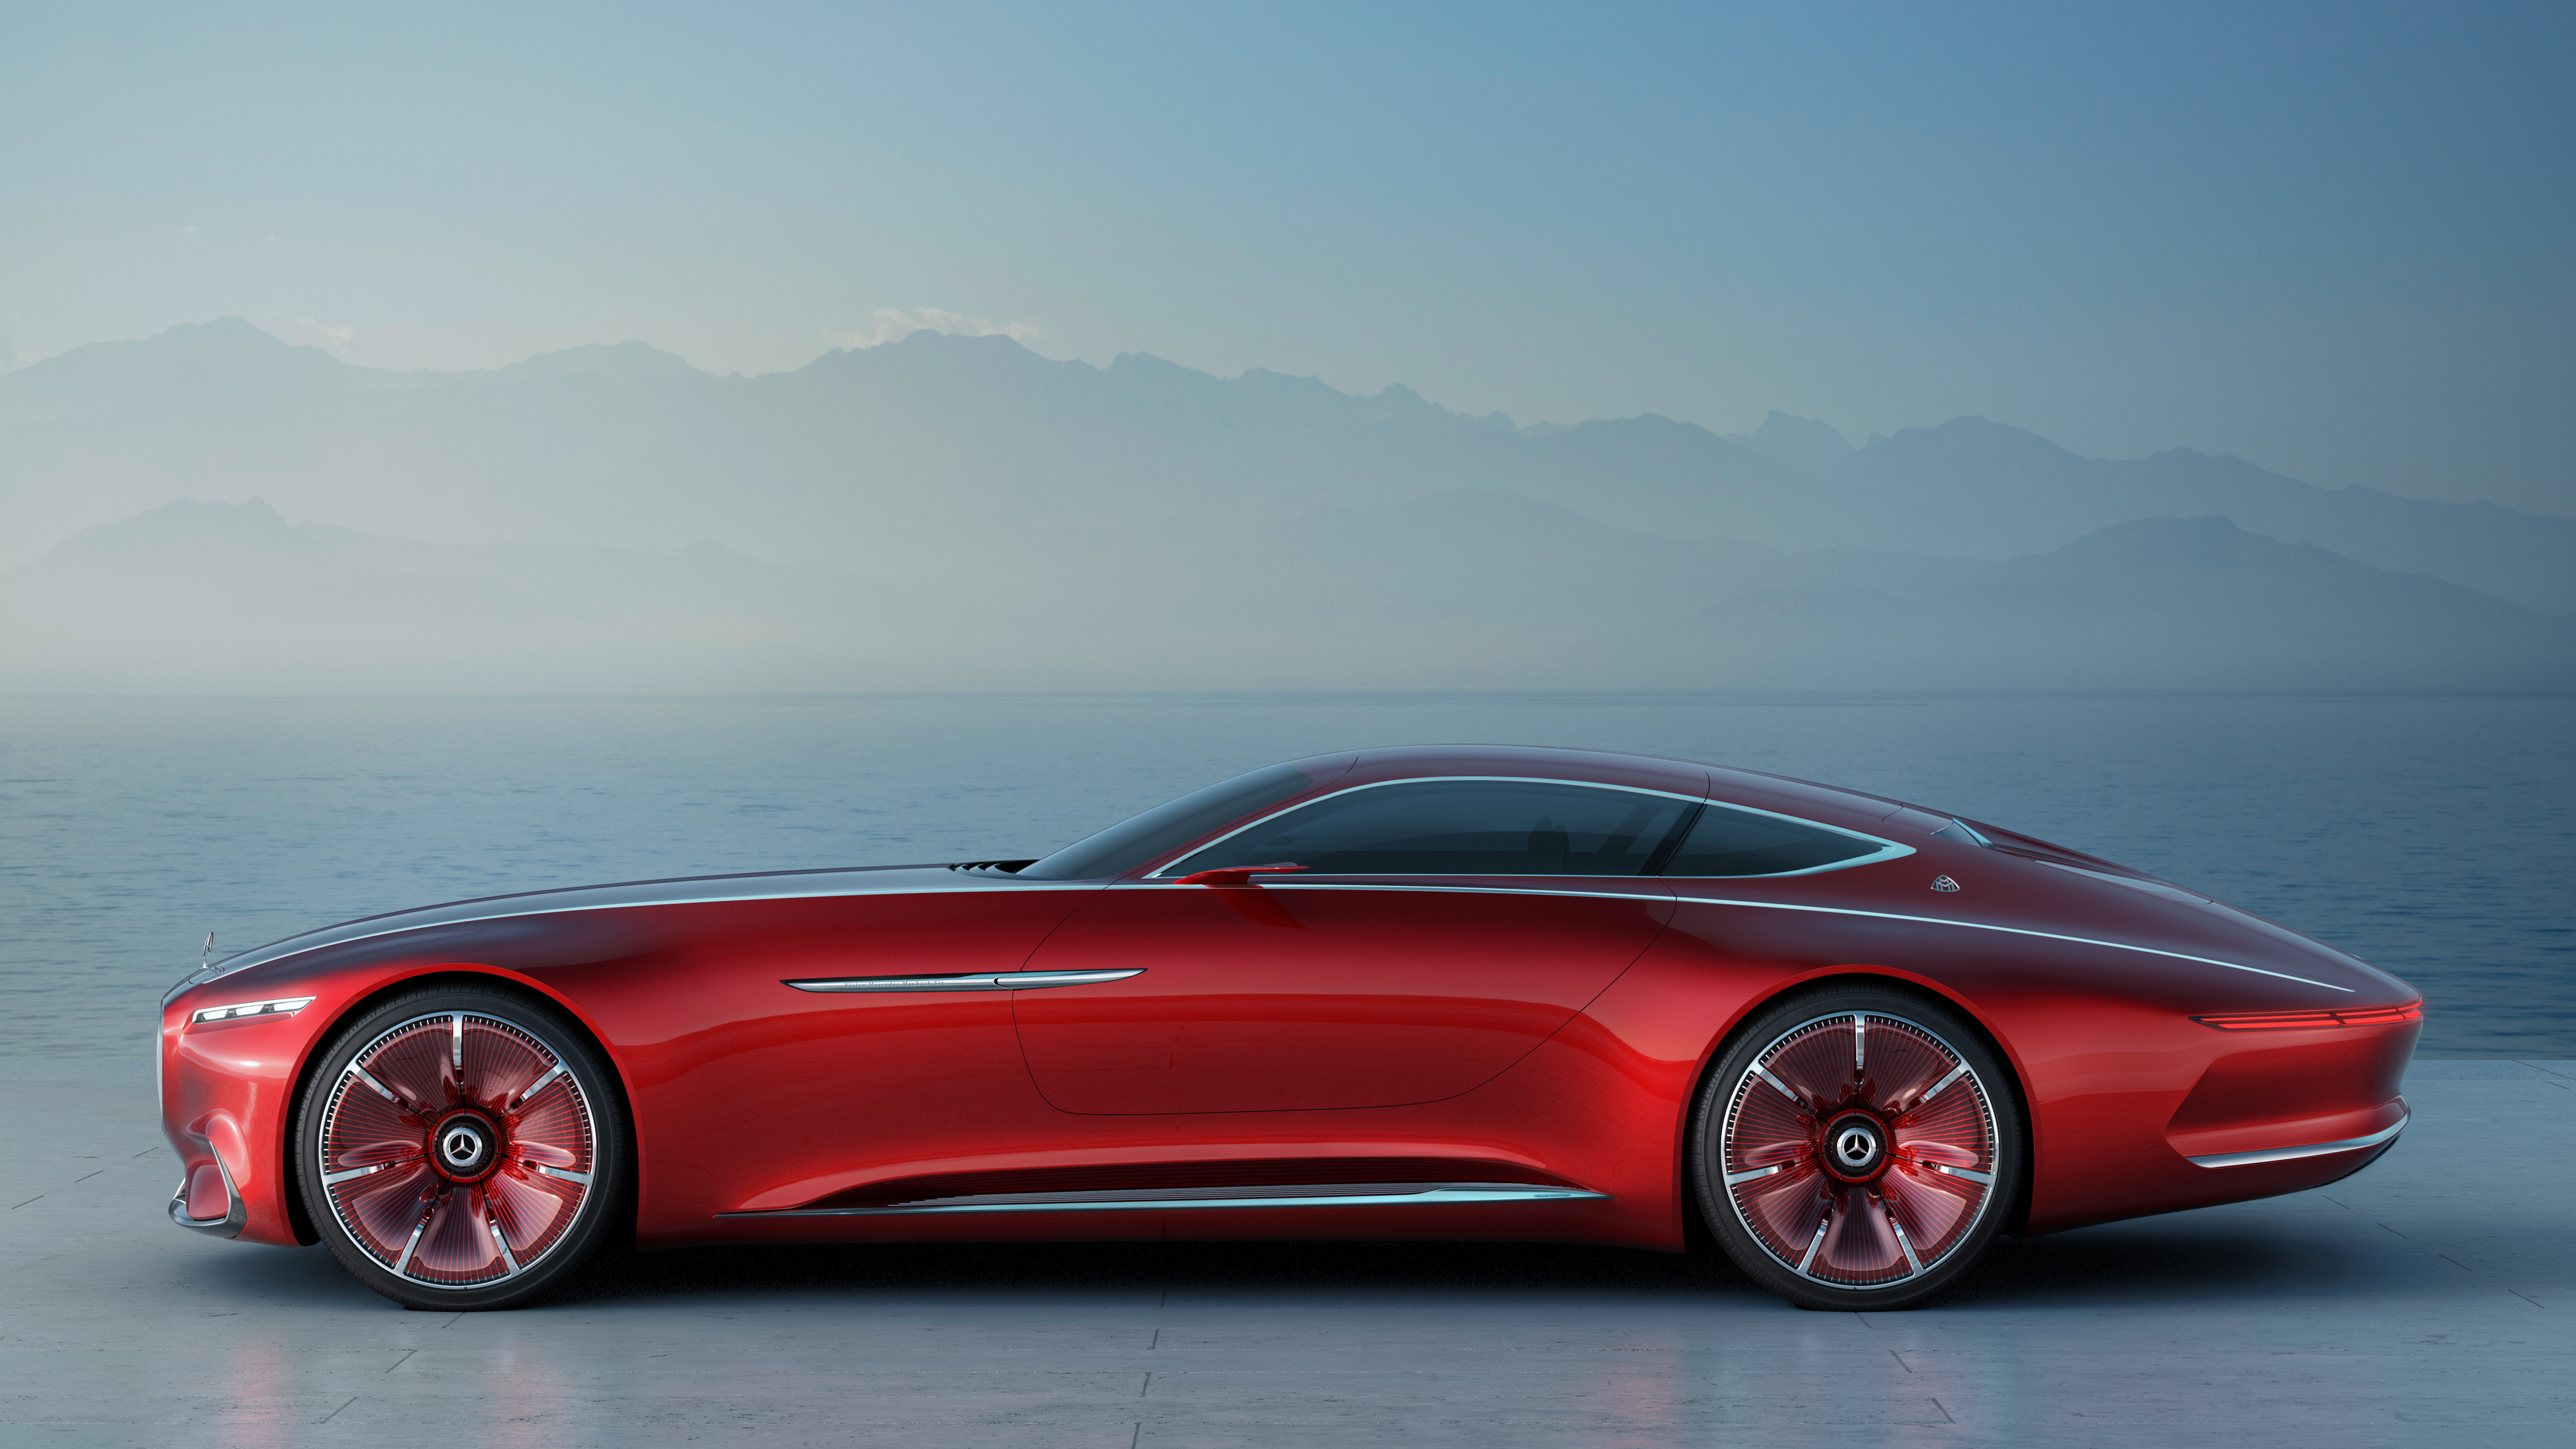 Mercedes Next Vehicle Is A 20 Foot Luxury Electric Maybach That You